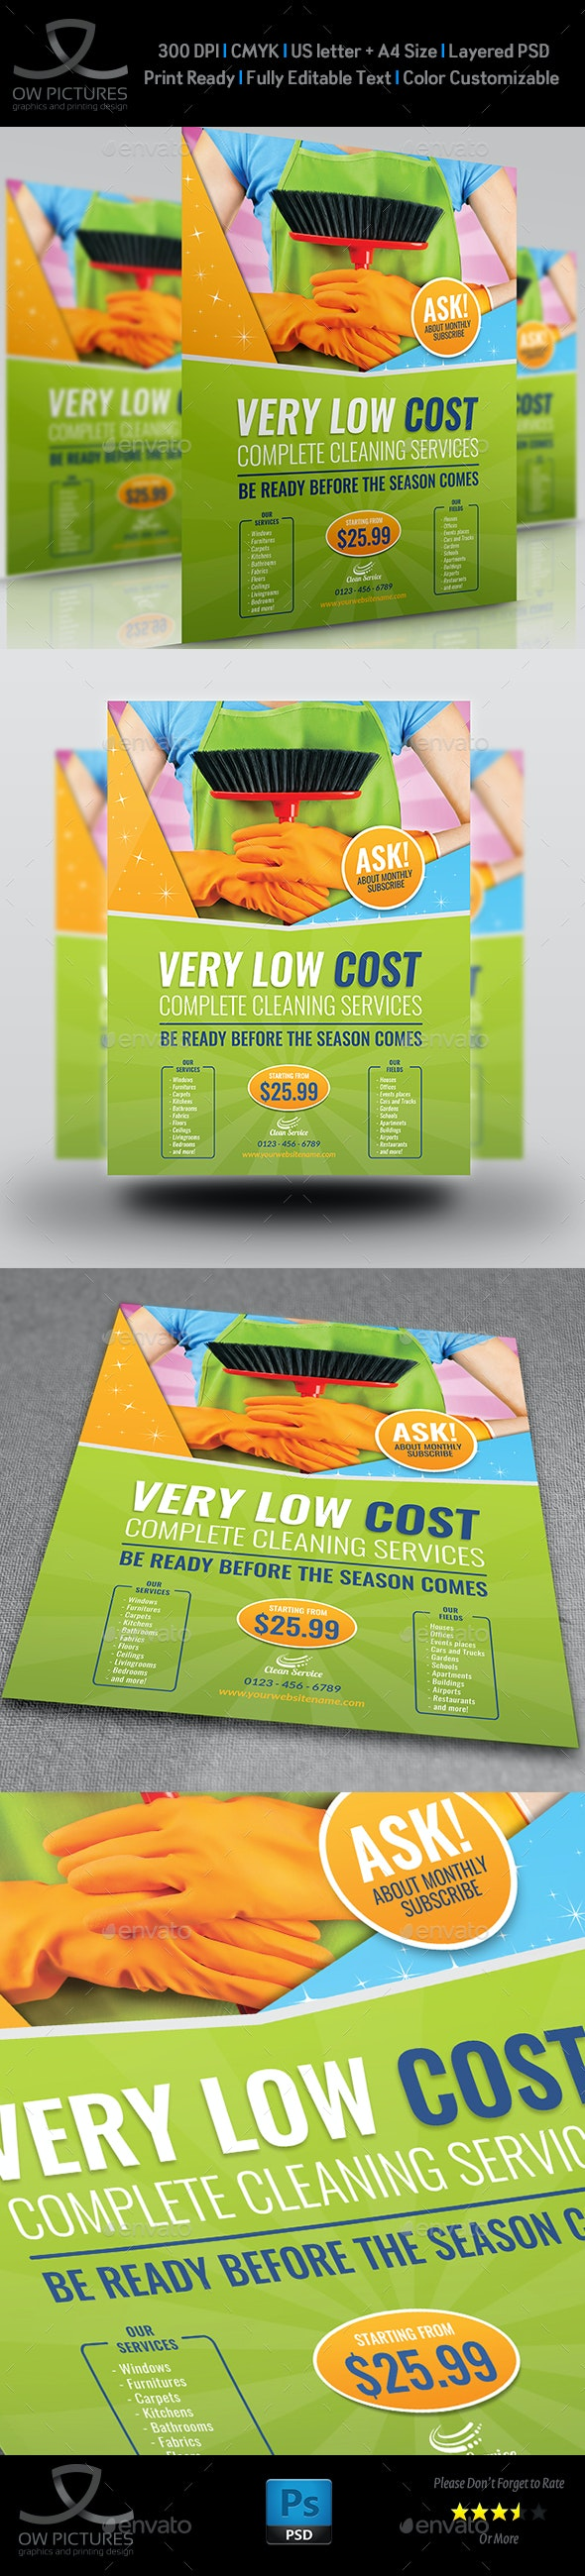 Cleaning Services Flyer Template Vol.3 - Commerce Flyers